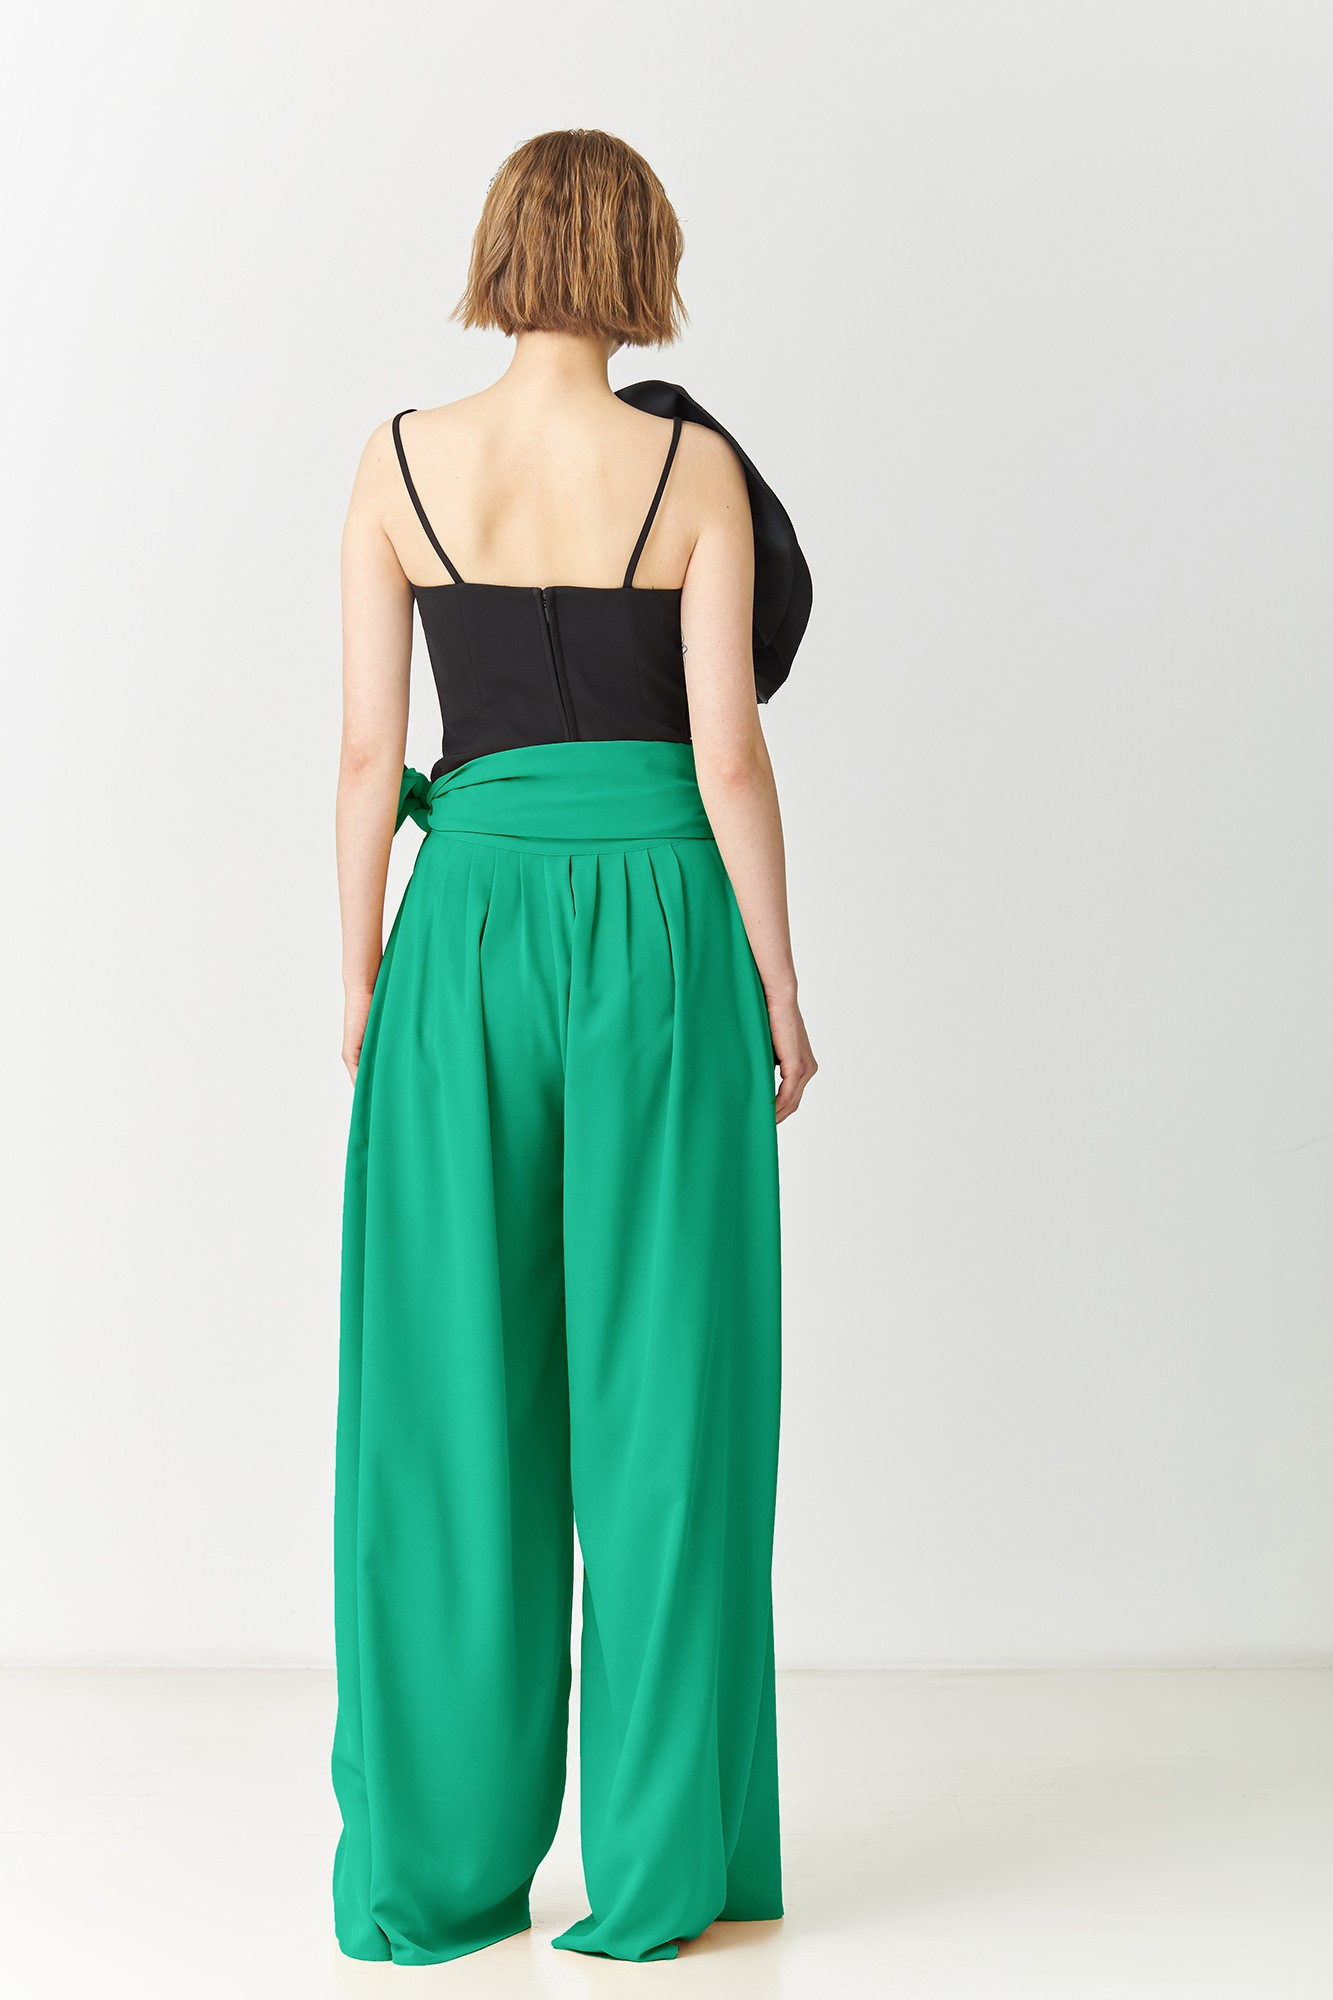 PANTALON LUZZY VERDE